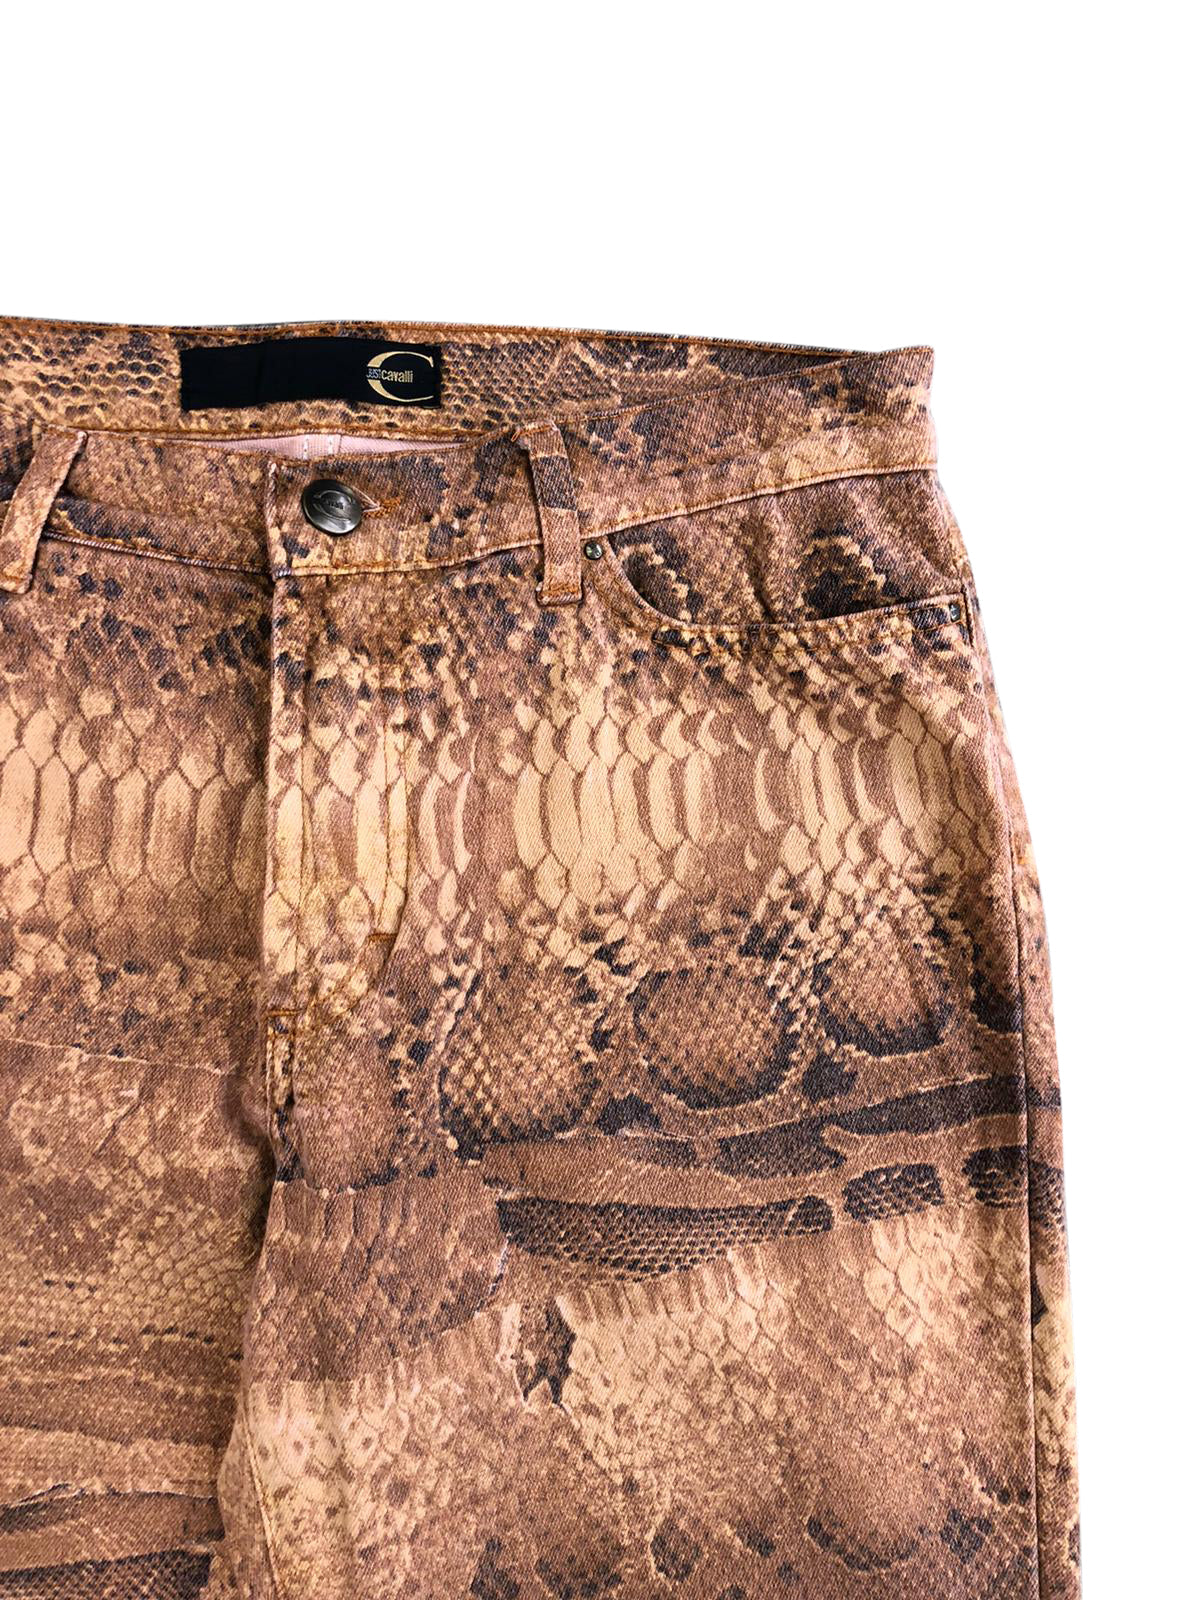 Roberto Cavalli Snake Print Jeans (Brown) UK 12